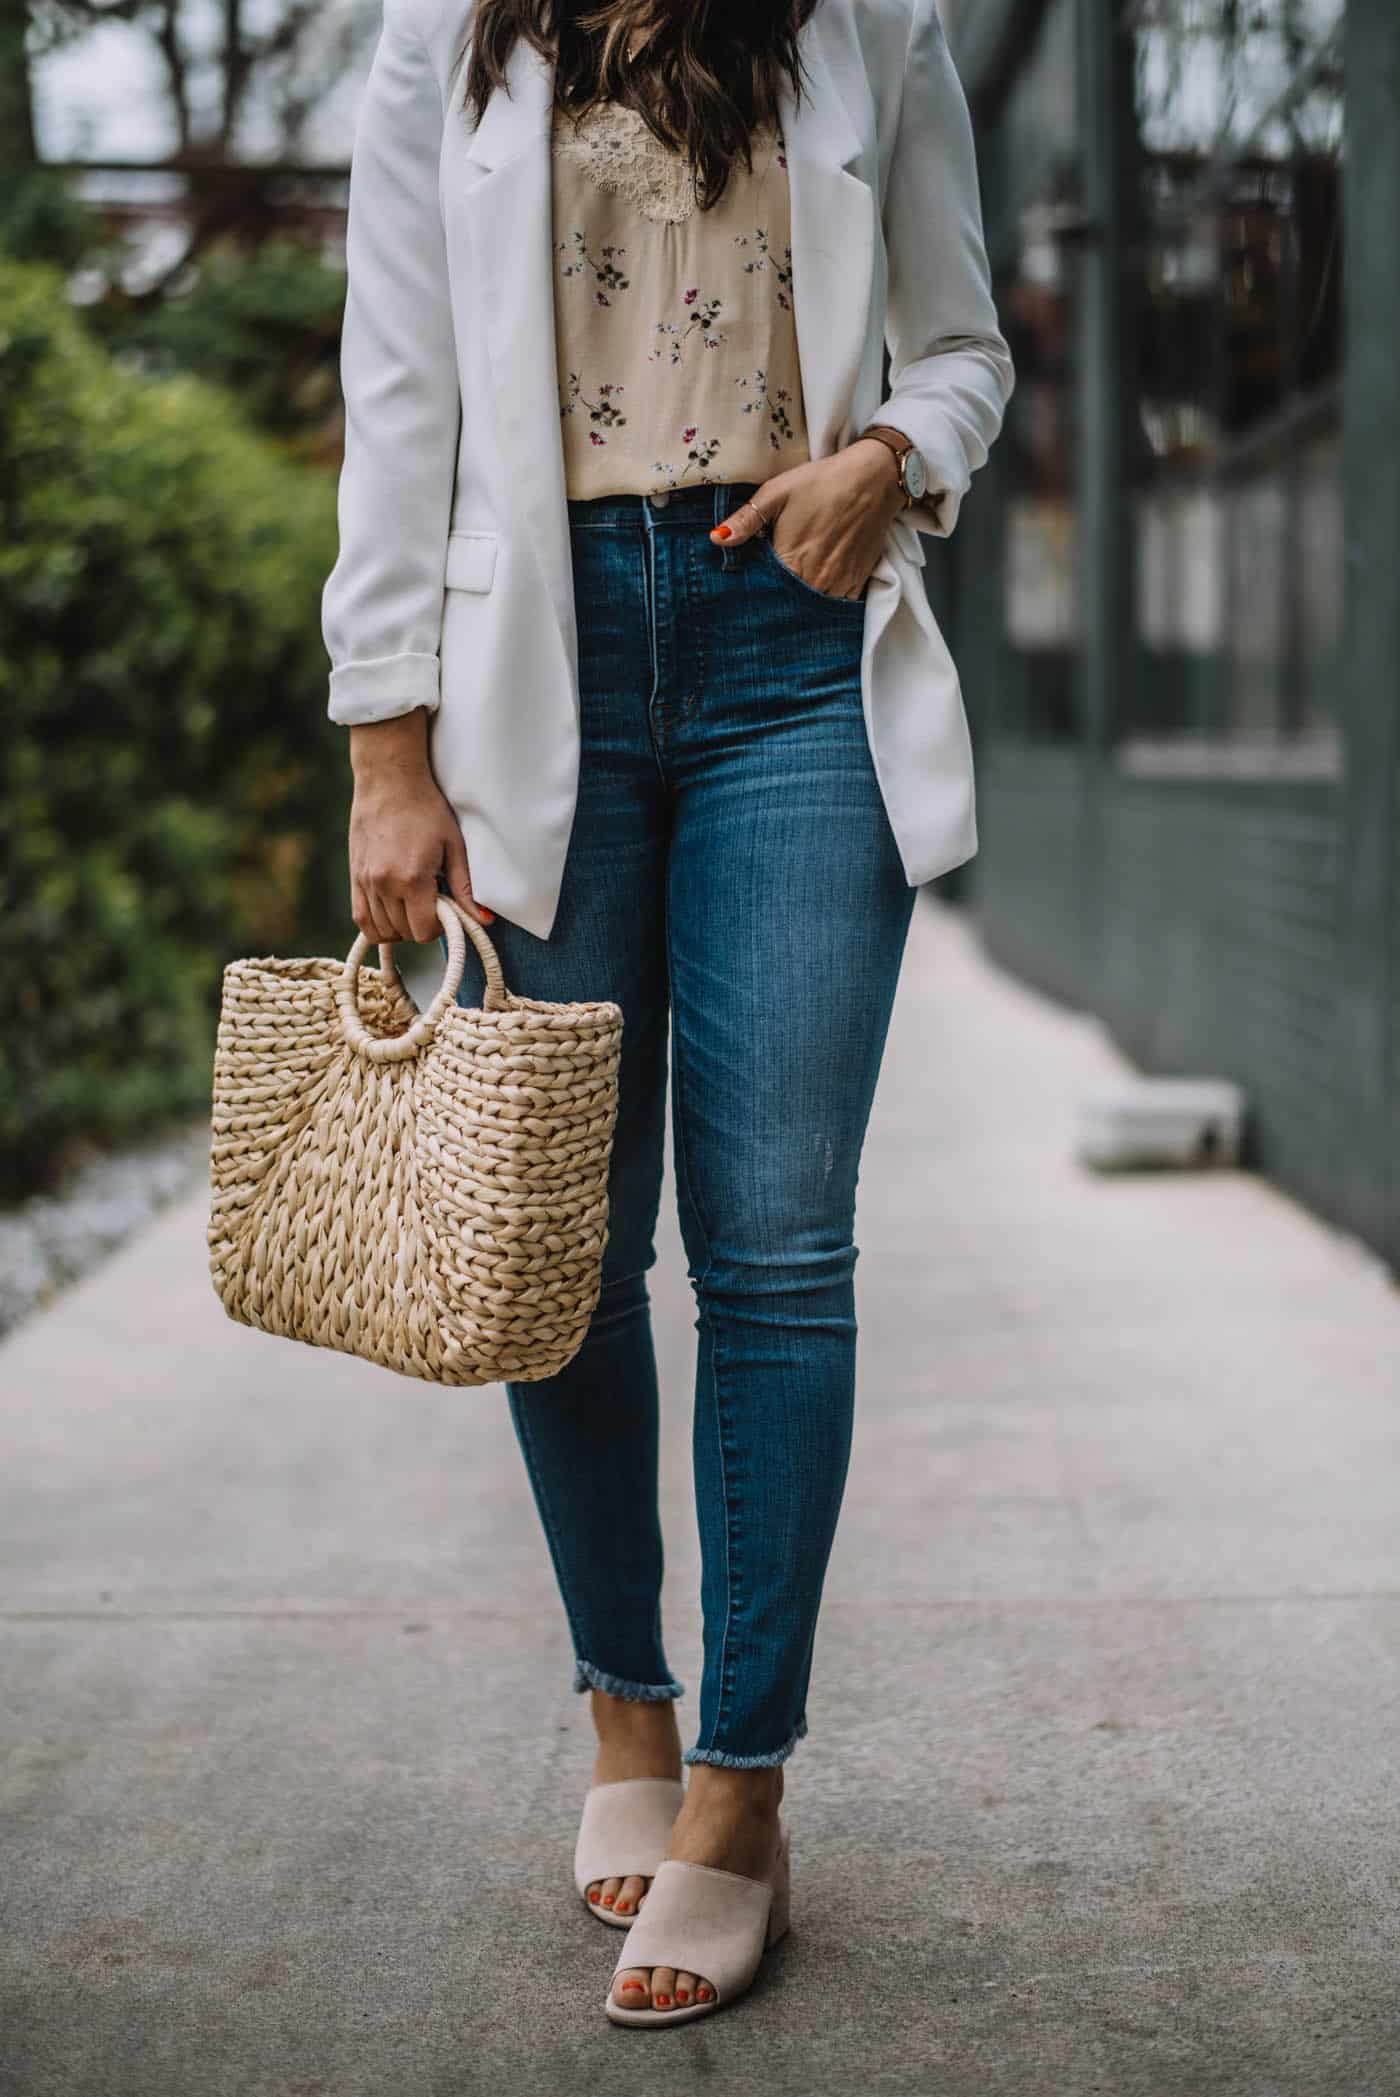 spring outfit ideas, blazer and jeans style, straw bag - My Style Vita @mystylevita